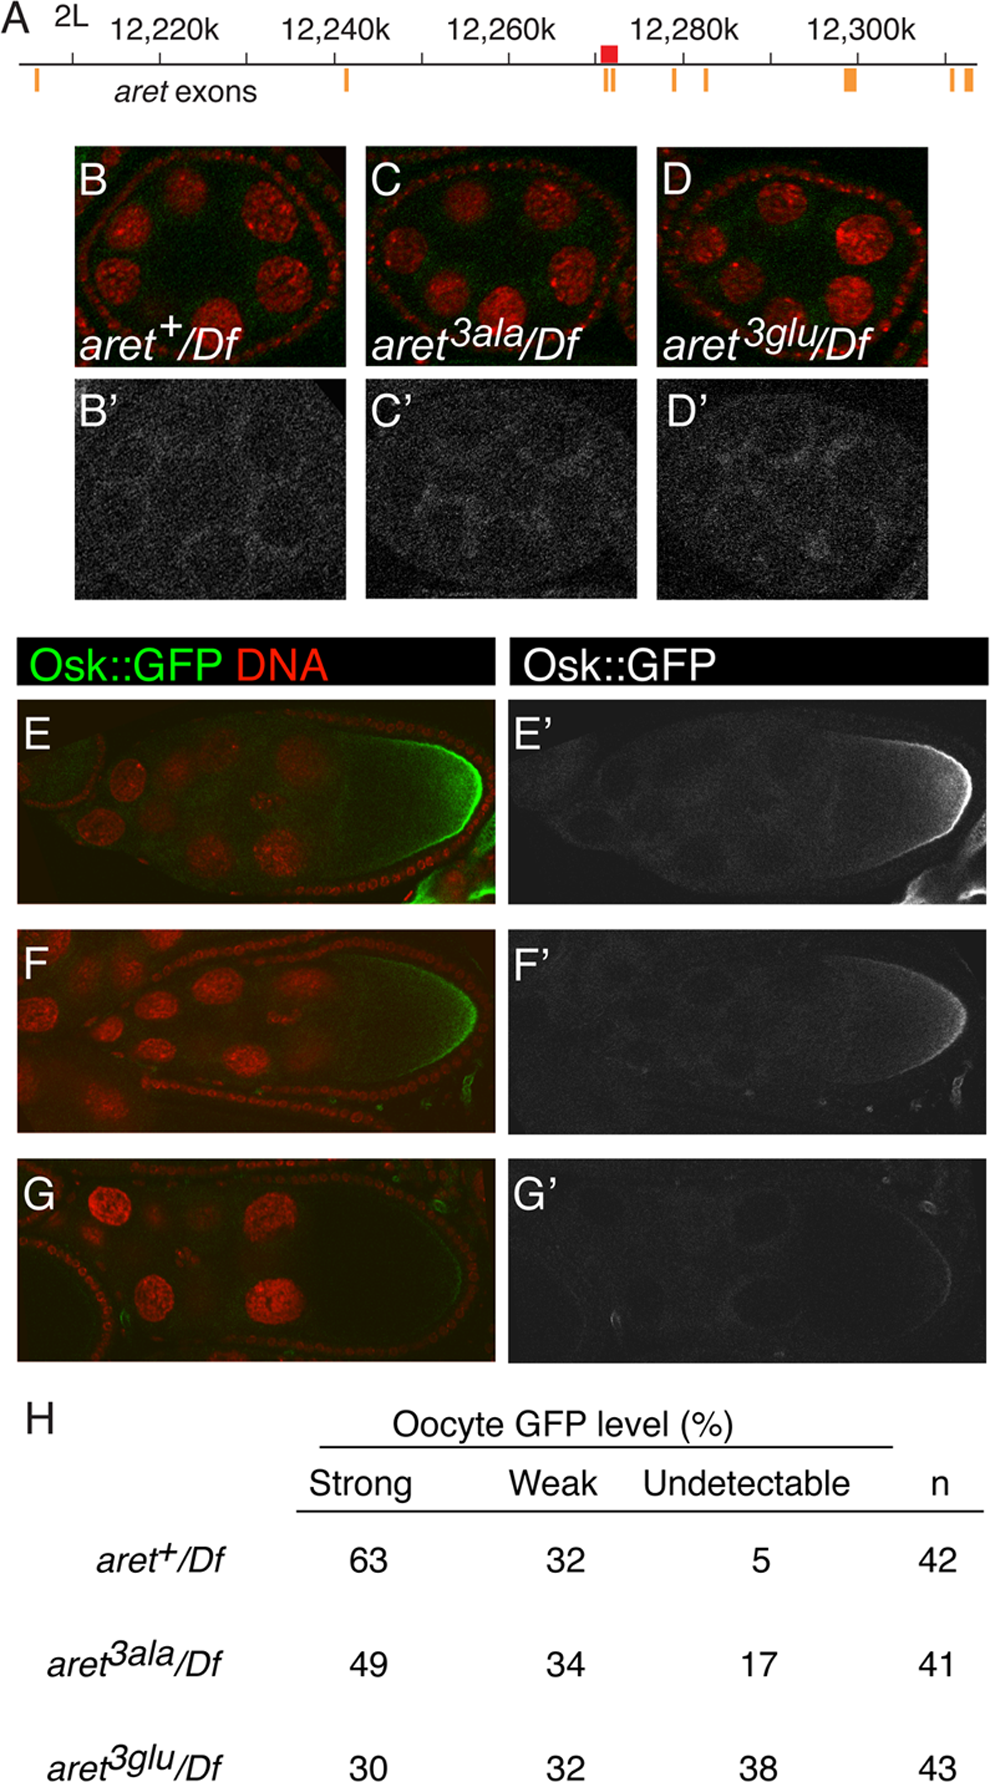 Translational repression and activation in <i>aret</i> mutants.